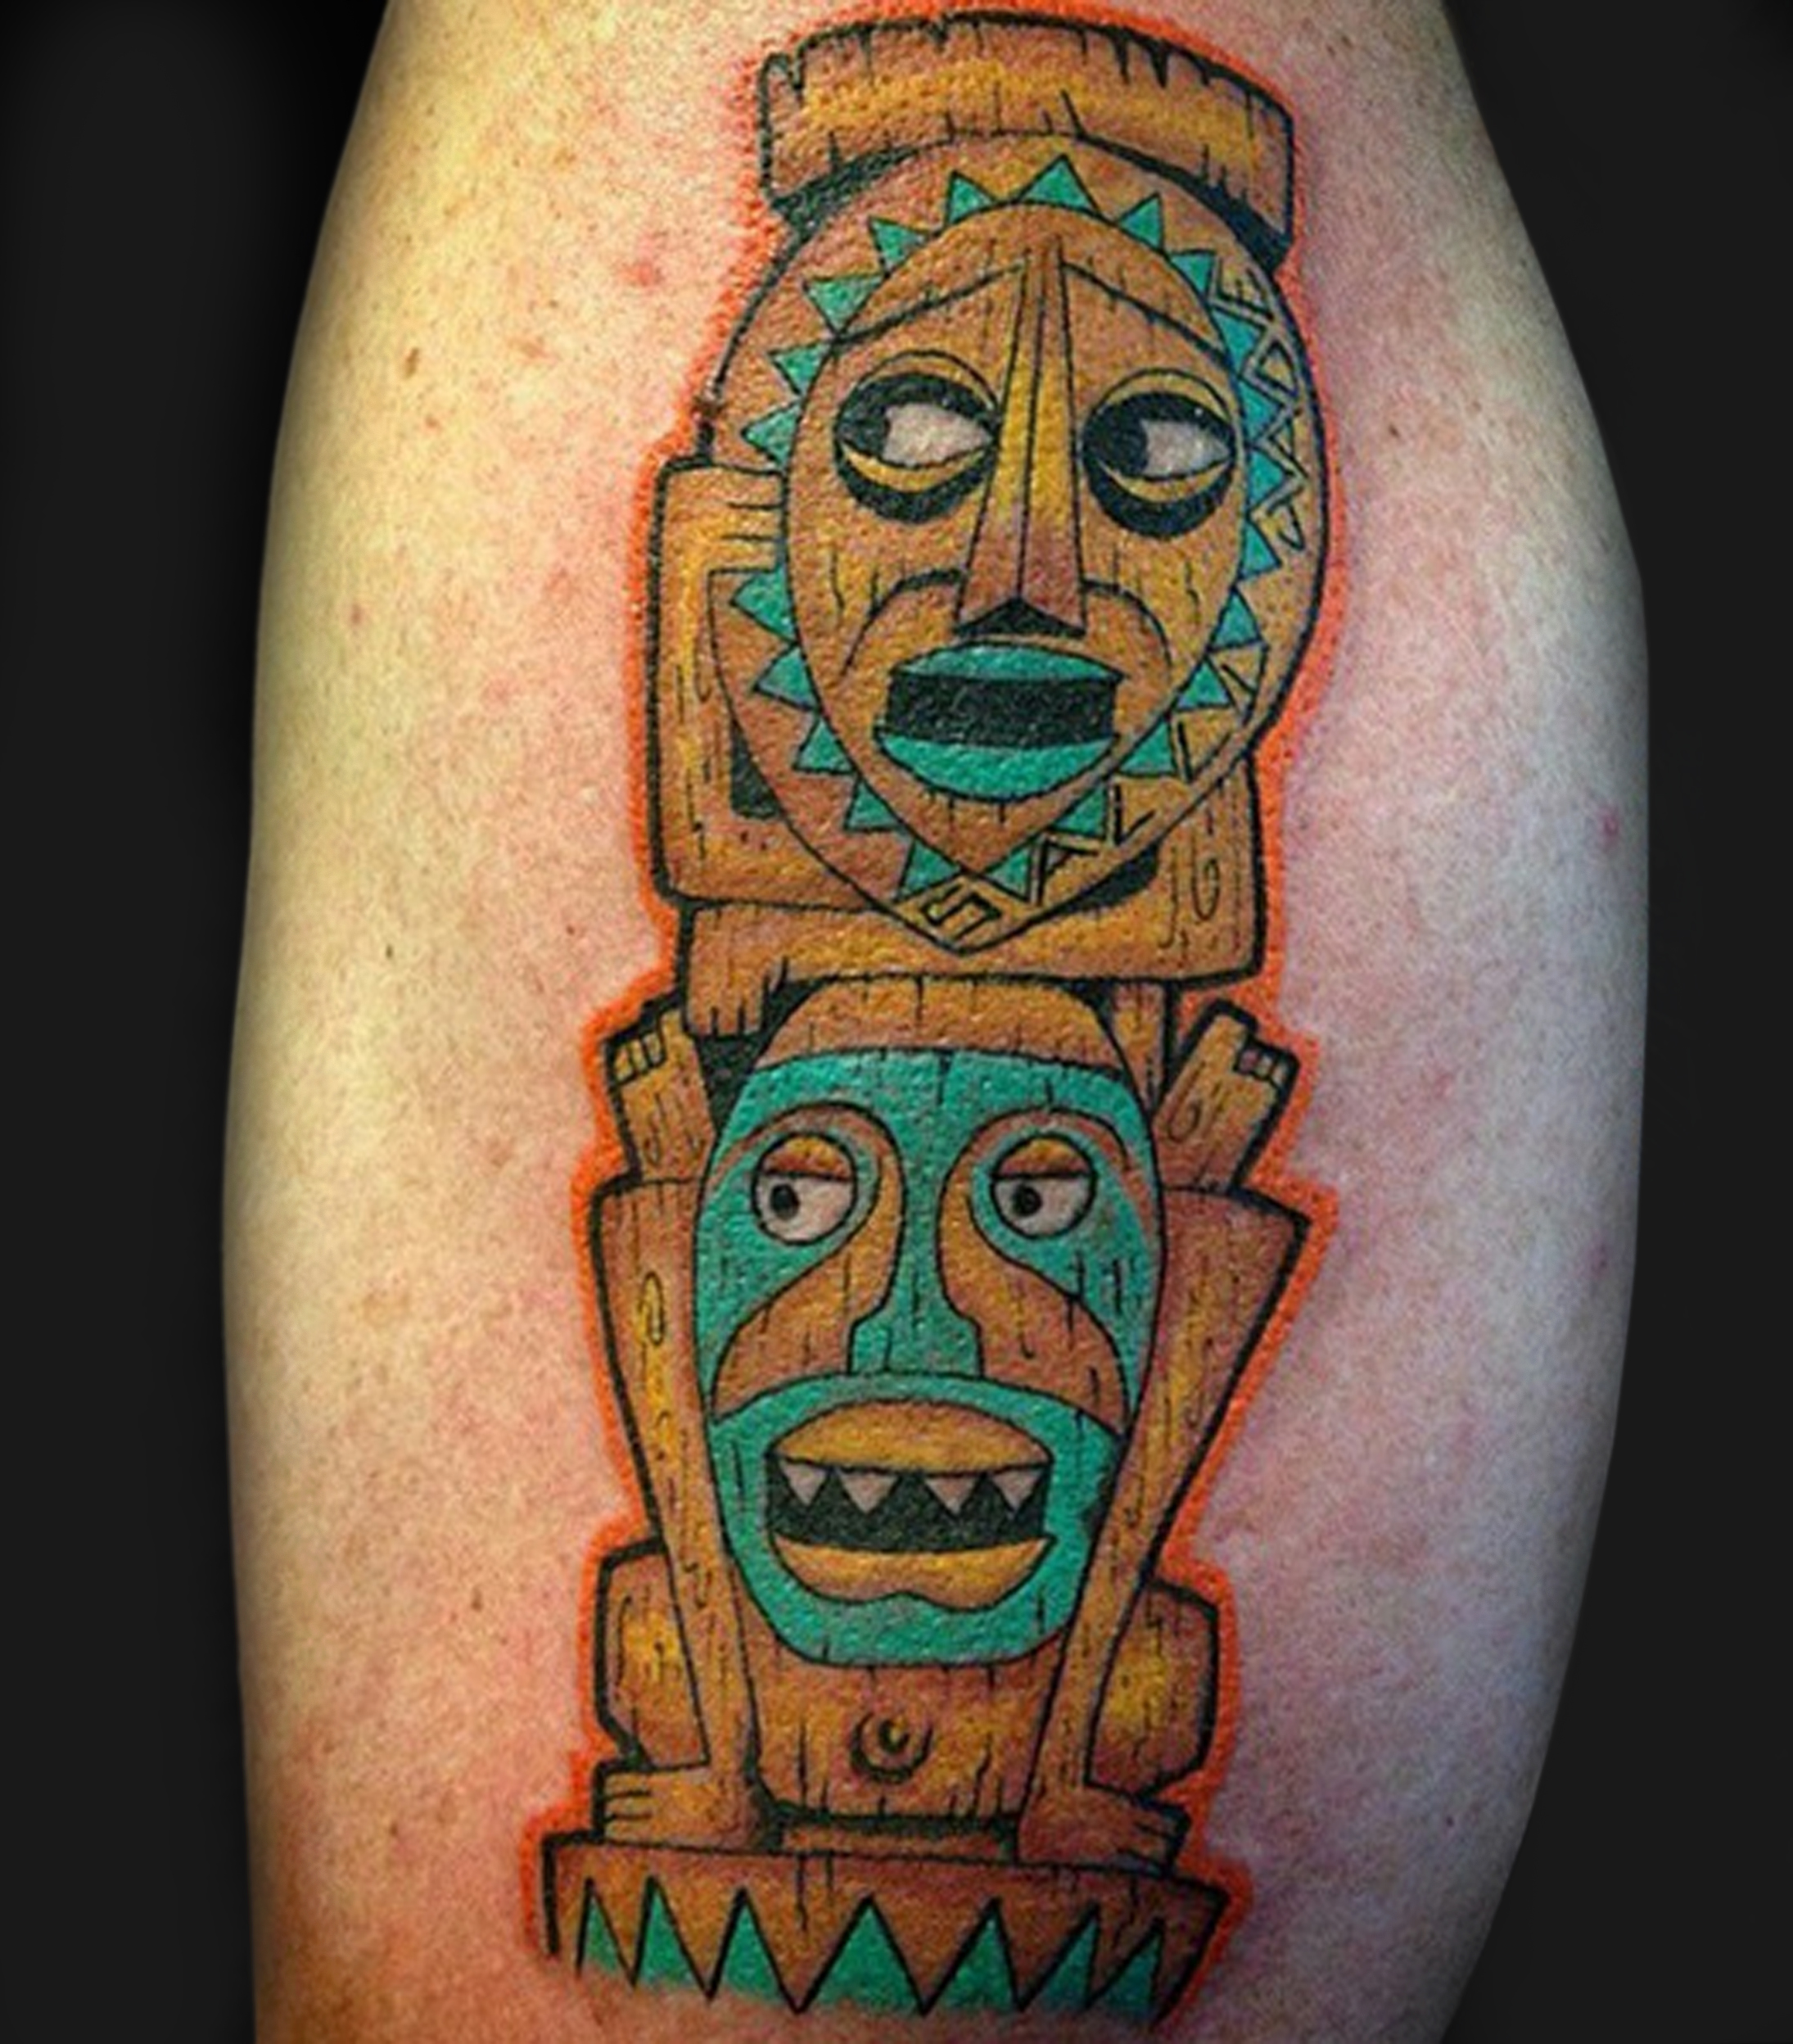 Attractive Tiki Mask Tattoo Design For Sleeve By Randy Brard